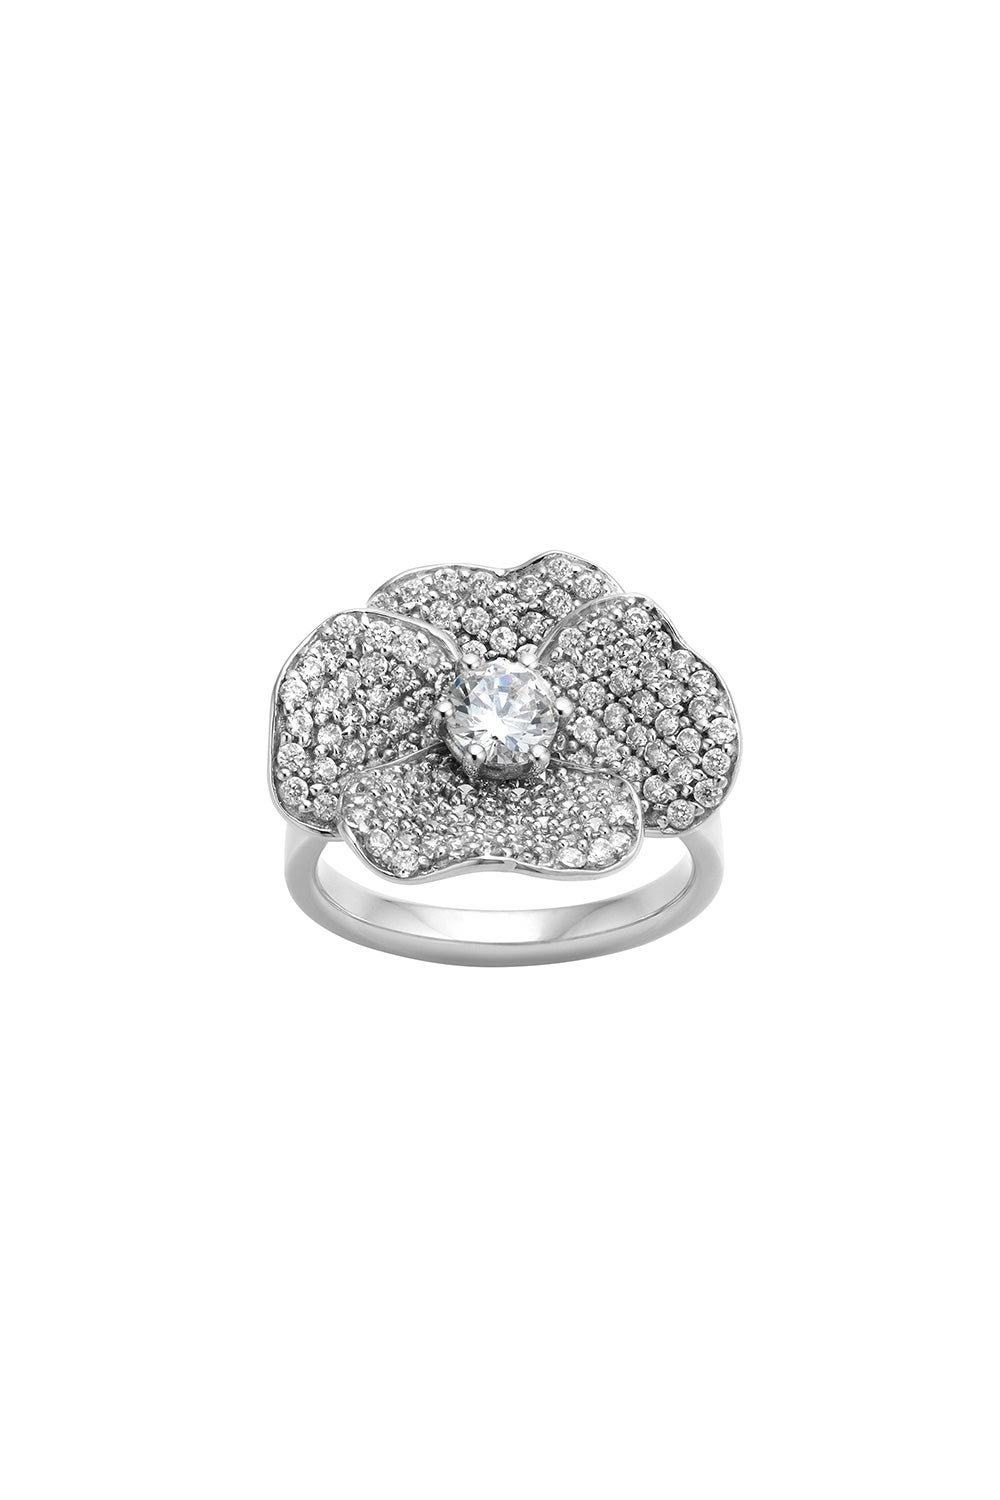 Diamond Pansy Ring, 9ct White Gold, 1.58ct Diamond